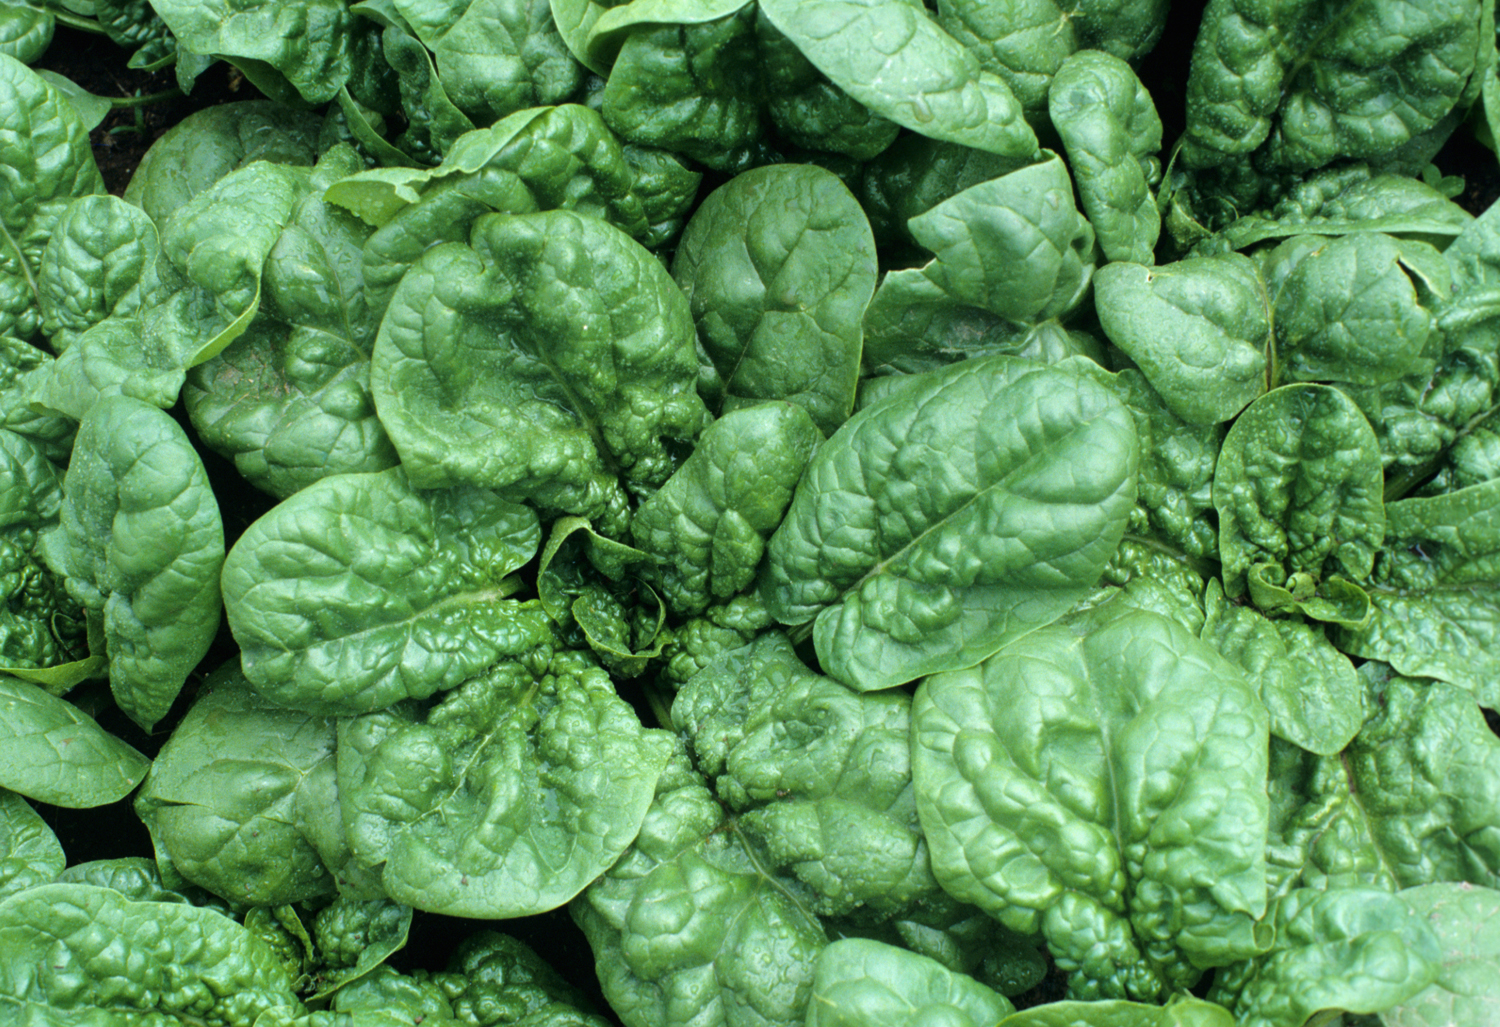 bloomsdale_spinach_seeds